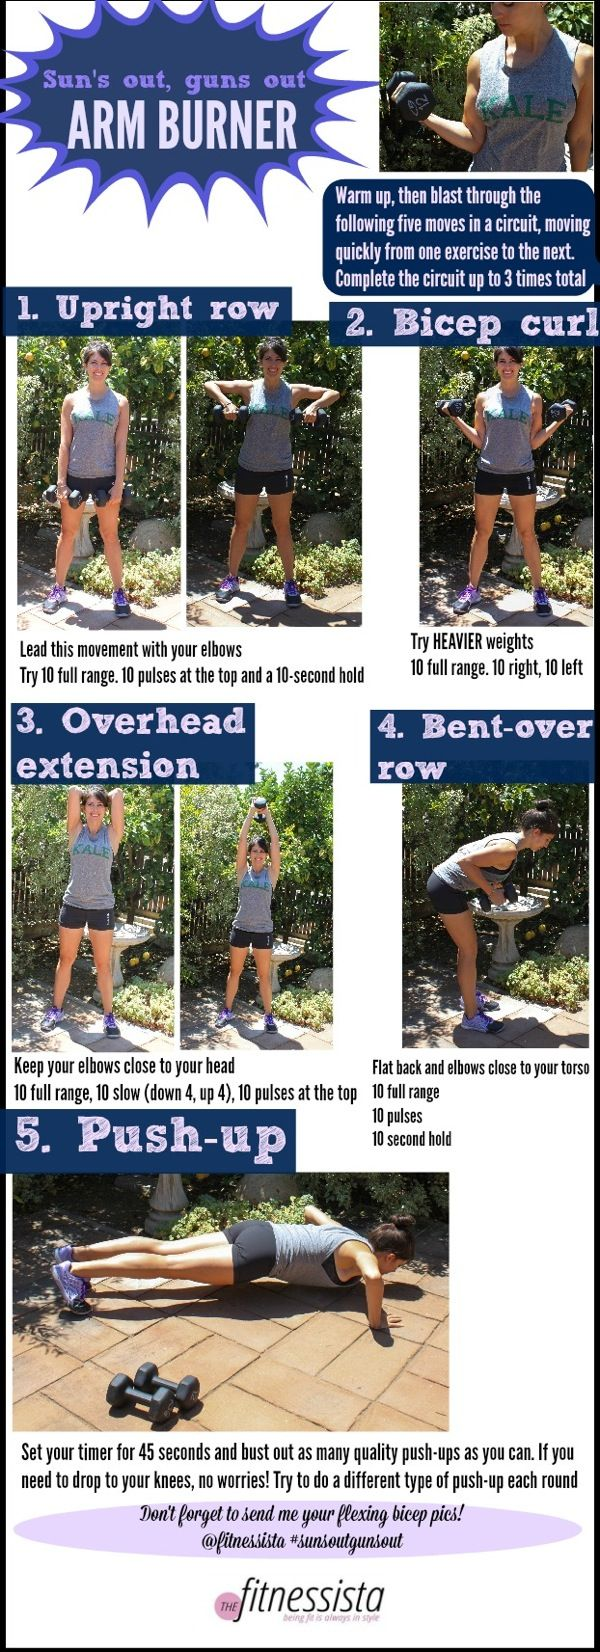 Suns out guns out arm burner. A fast and furious workout to strengthen your entire upper body! Can be completed with just a pair of dumbbells and your own body weight. www.fitnessista.com